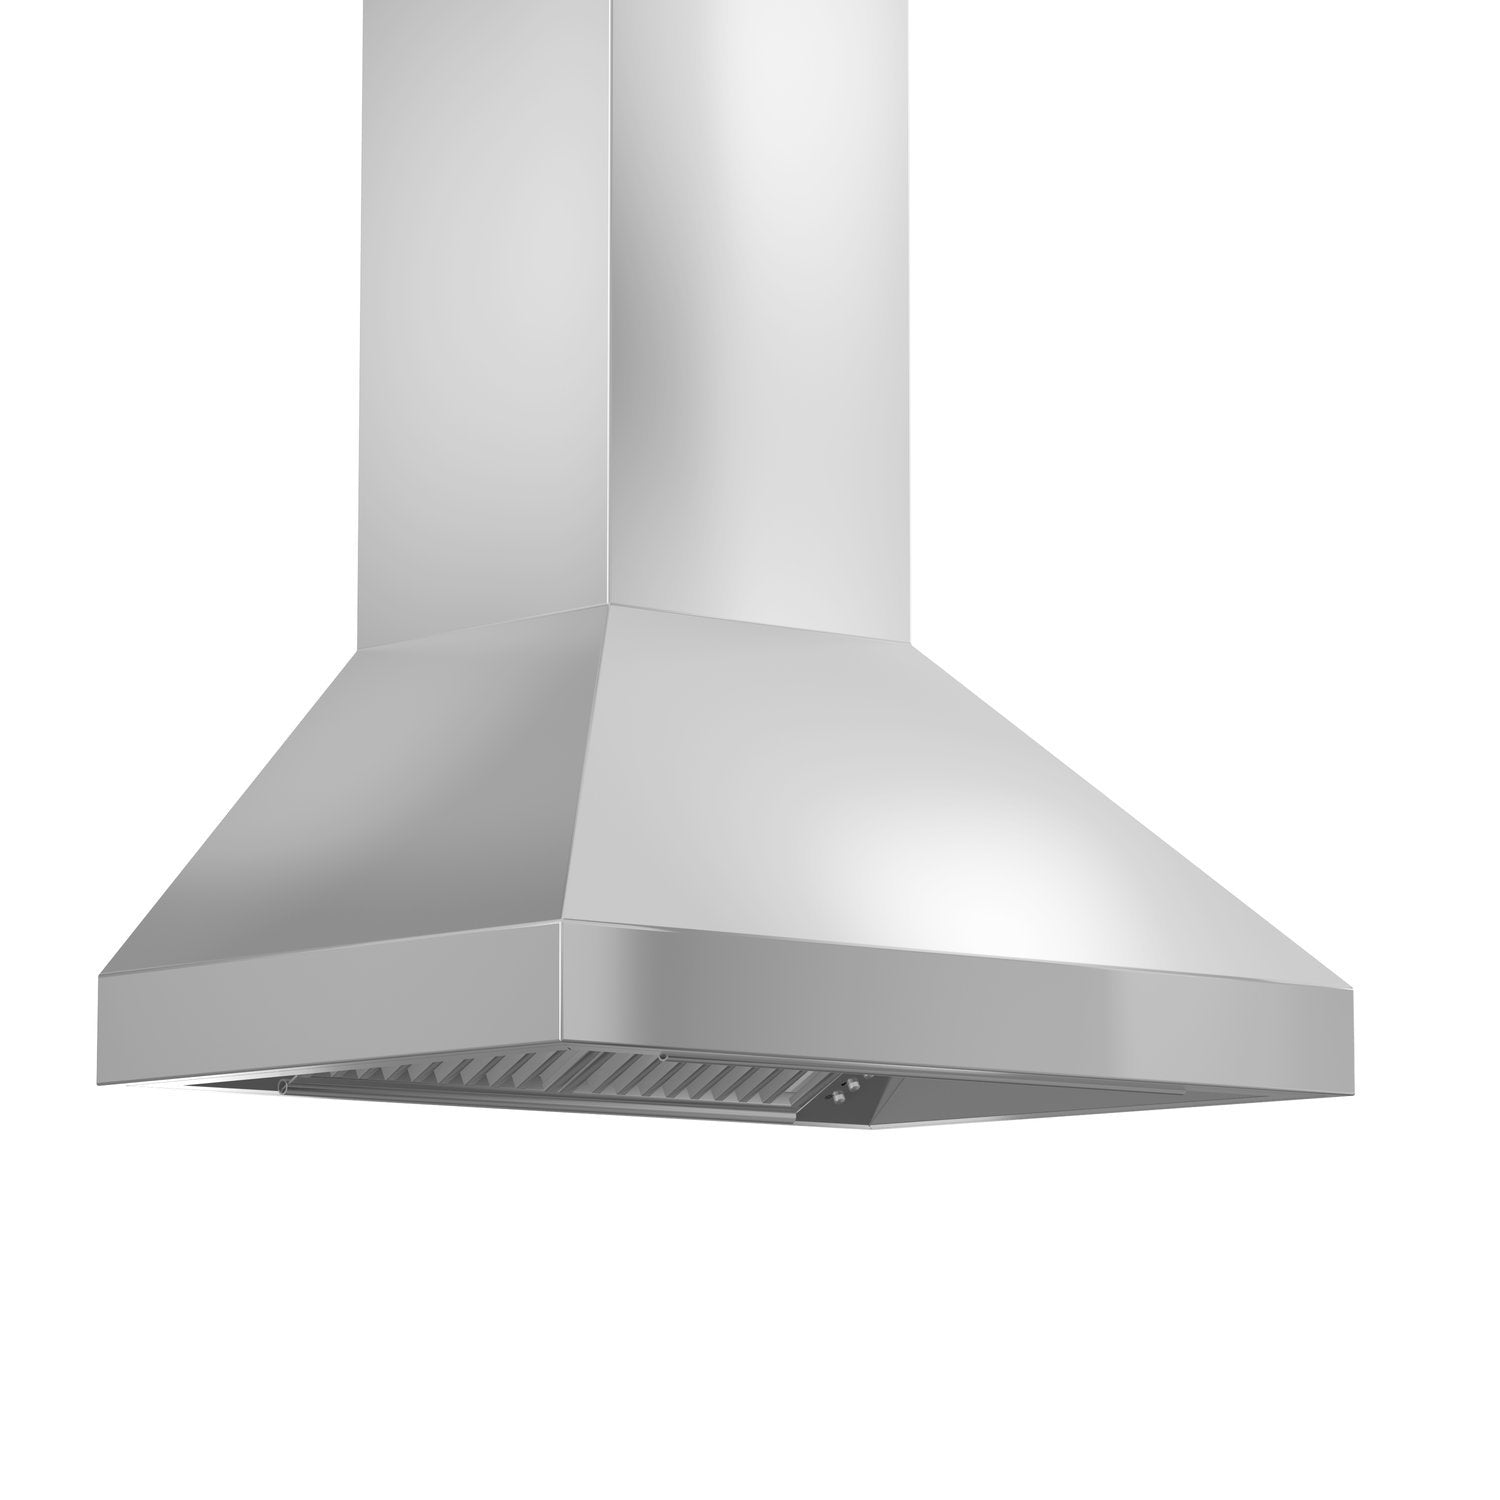 ZLINE 48 in. 900 CFM Wall Mount Range Hood in Stainless Steel with Crown Molding (597CRN-48)